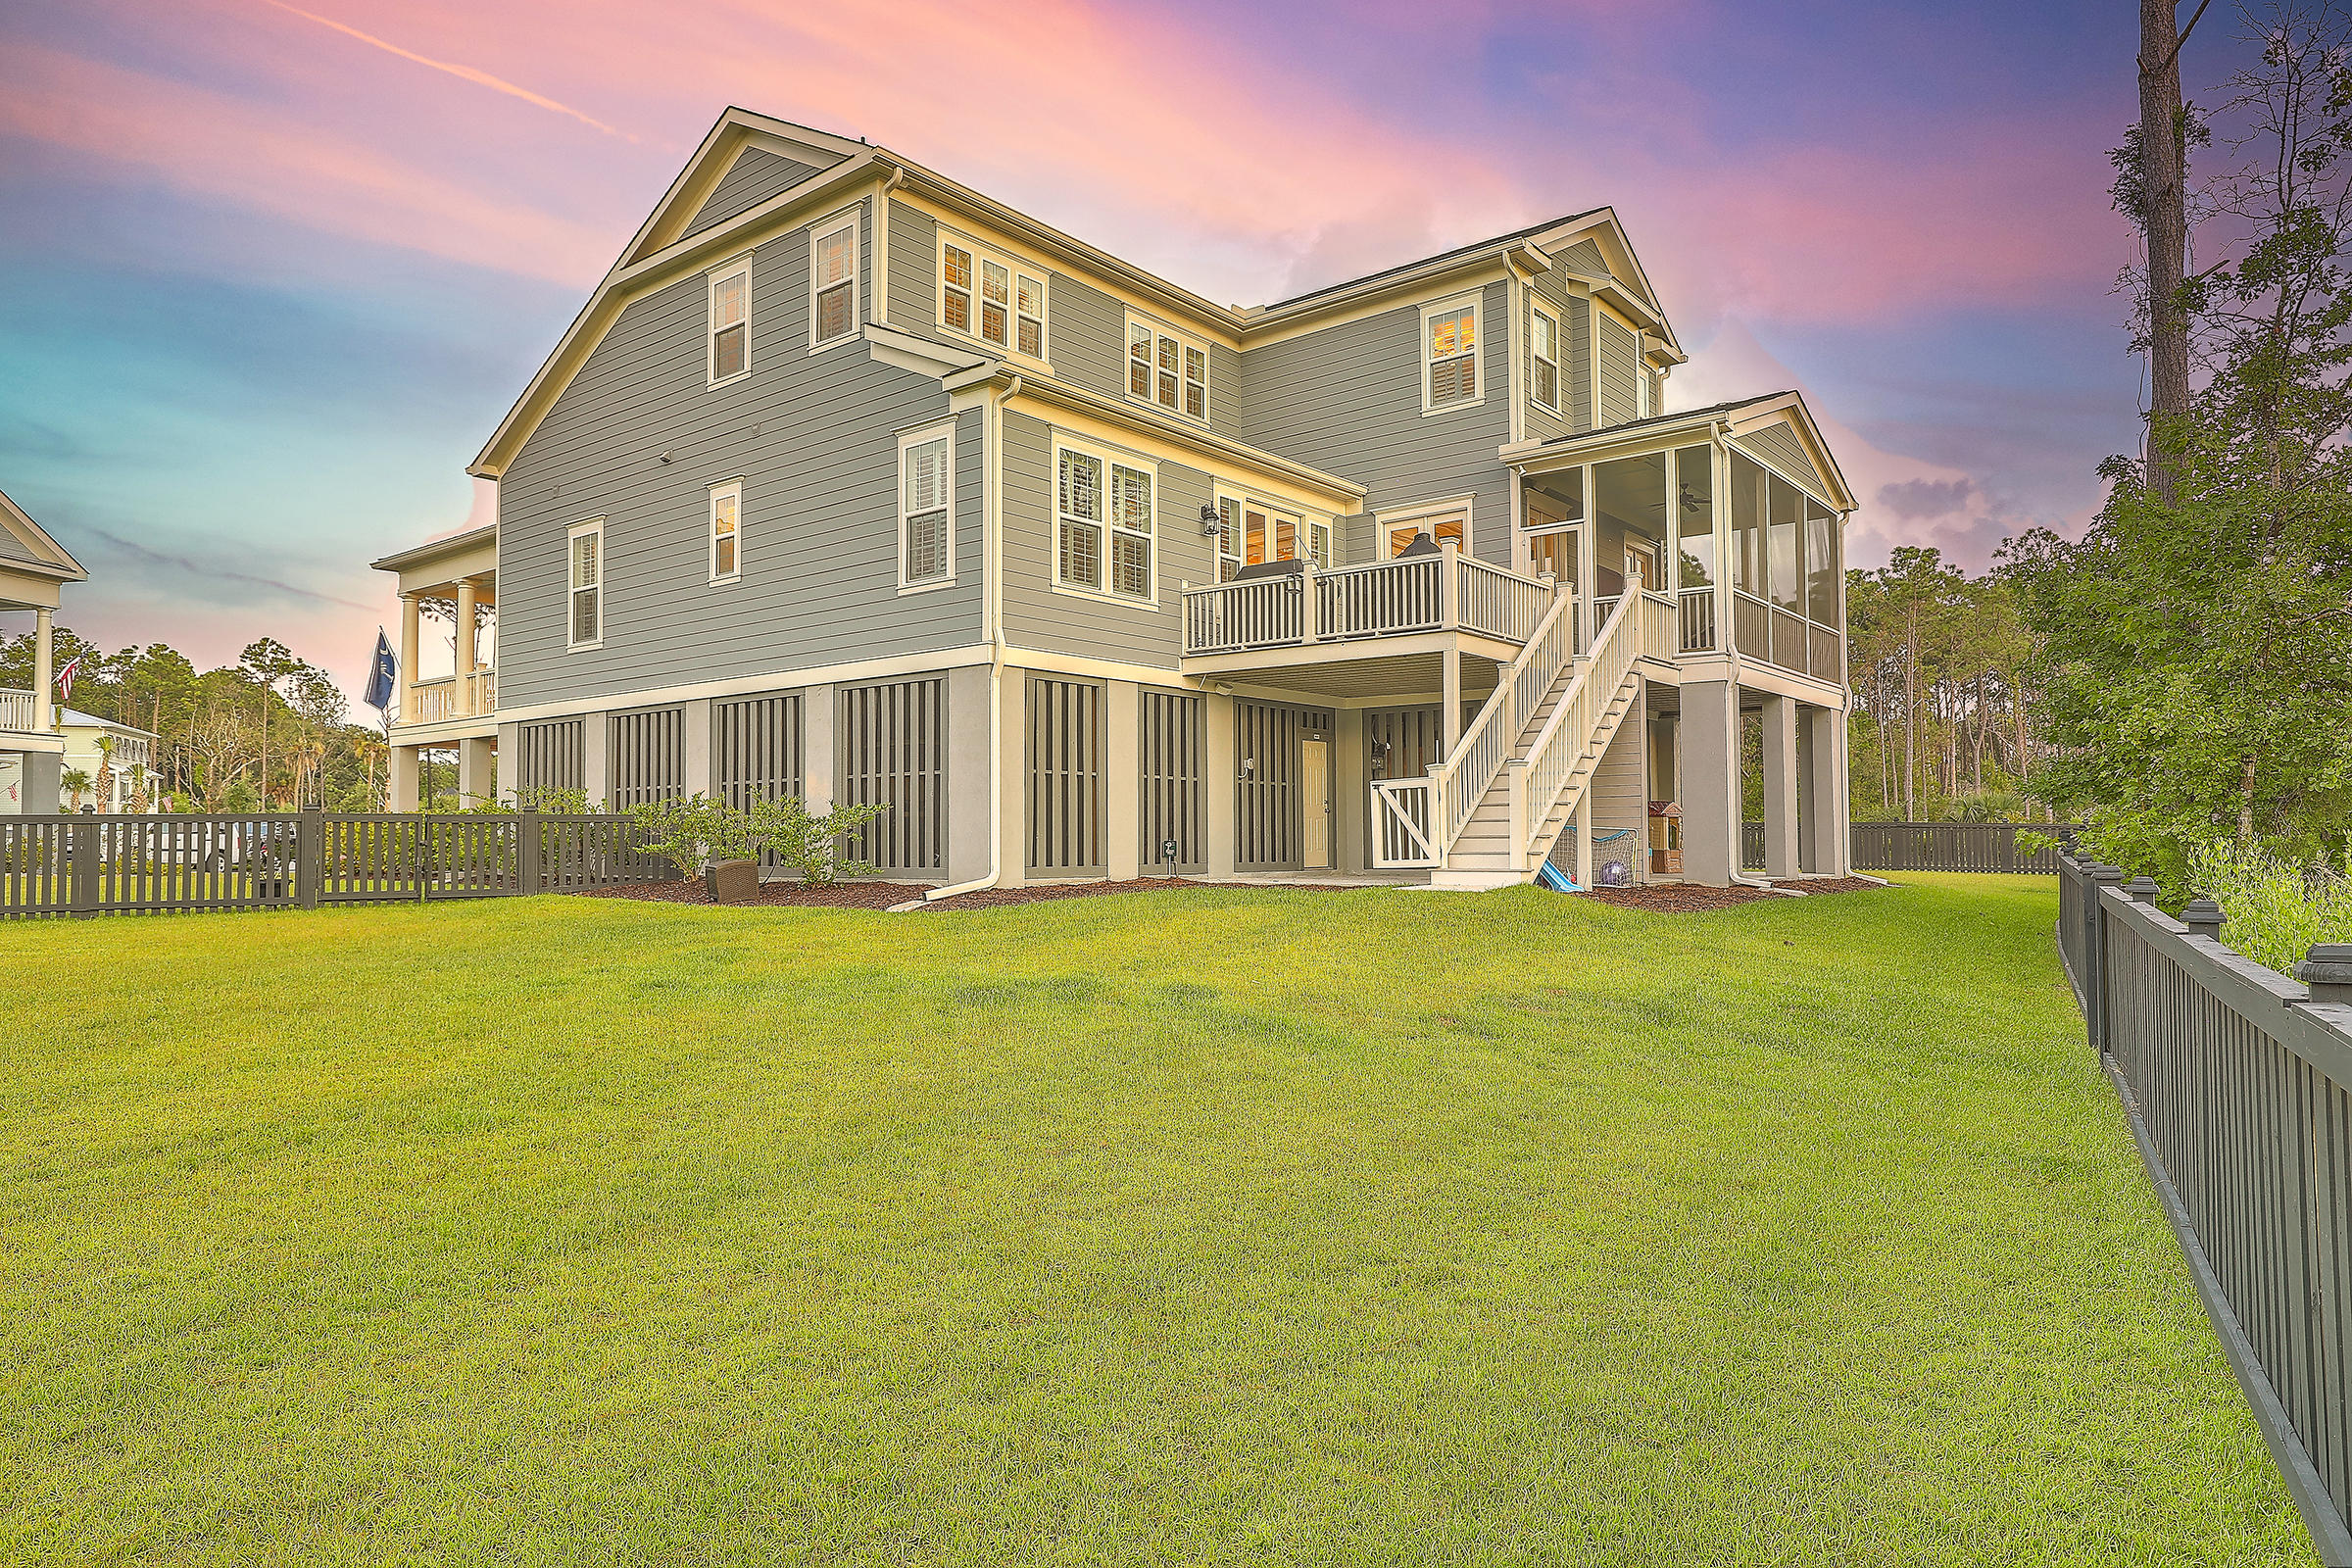 Stratton by the Sound Homes For Sale - 1204 Spottail, Mount Pleasant, SC - 71